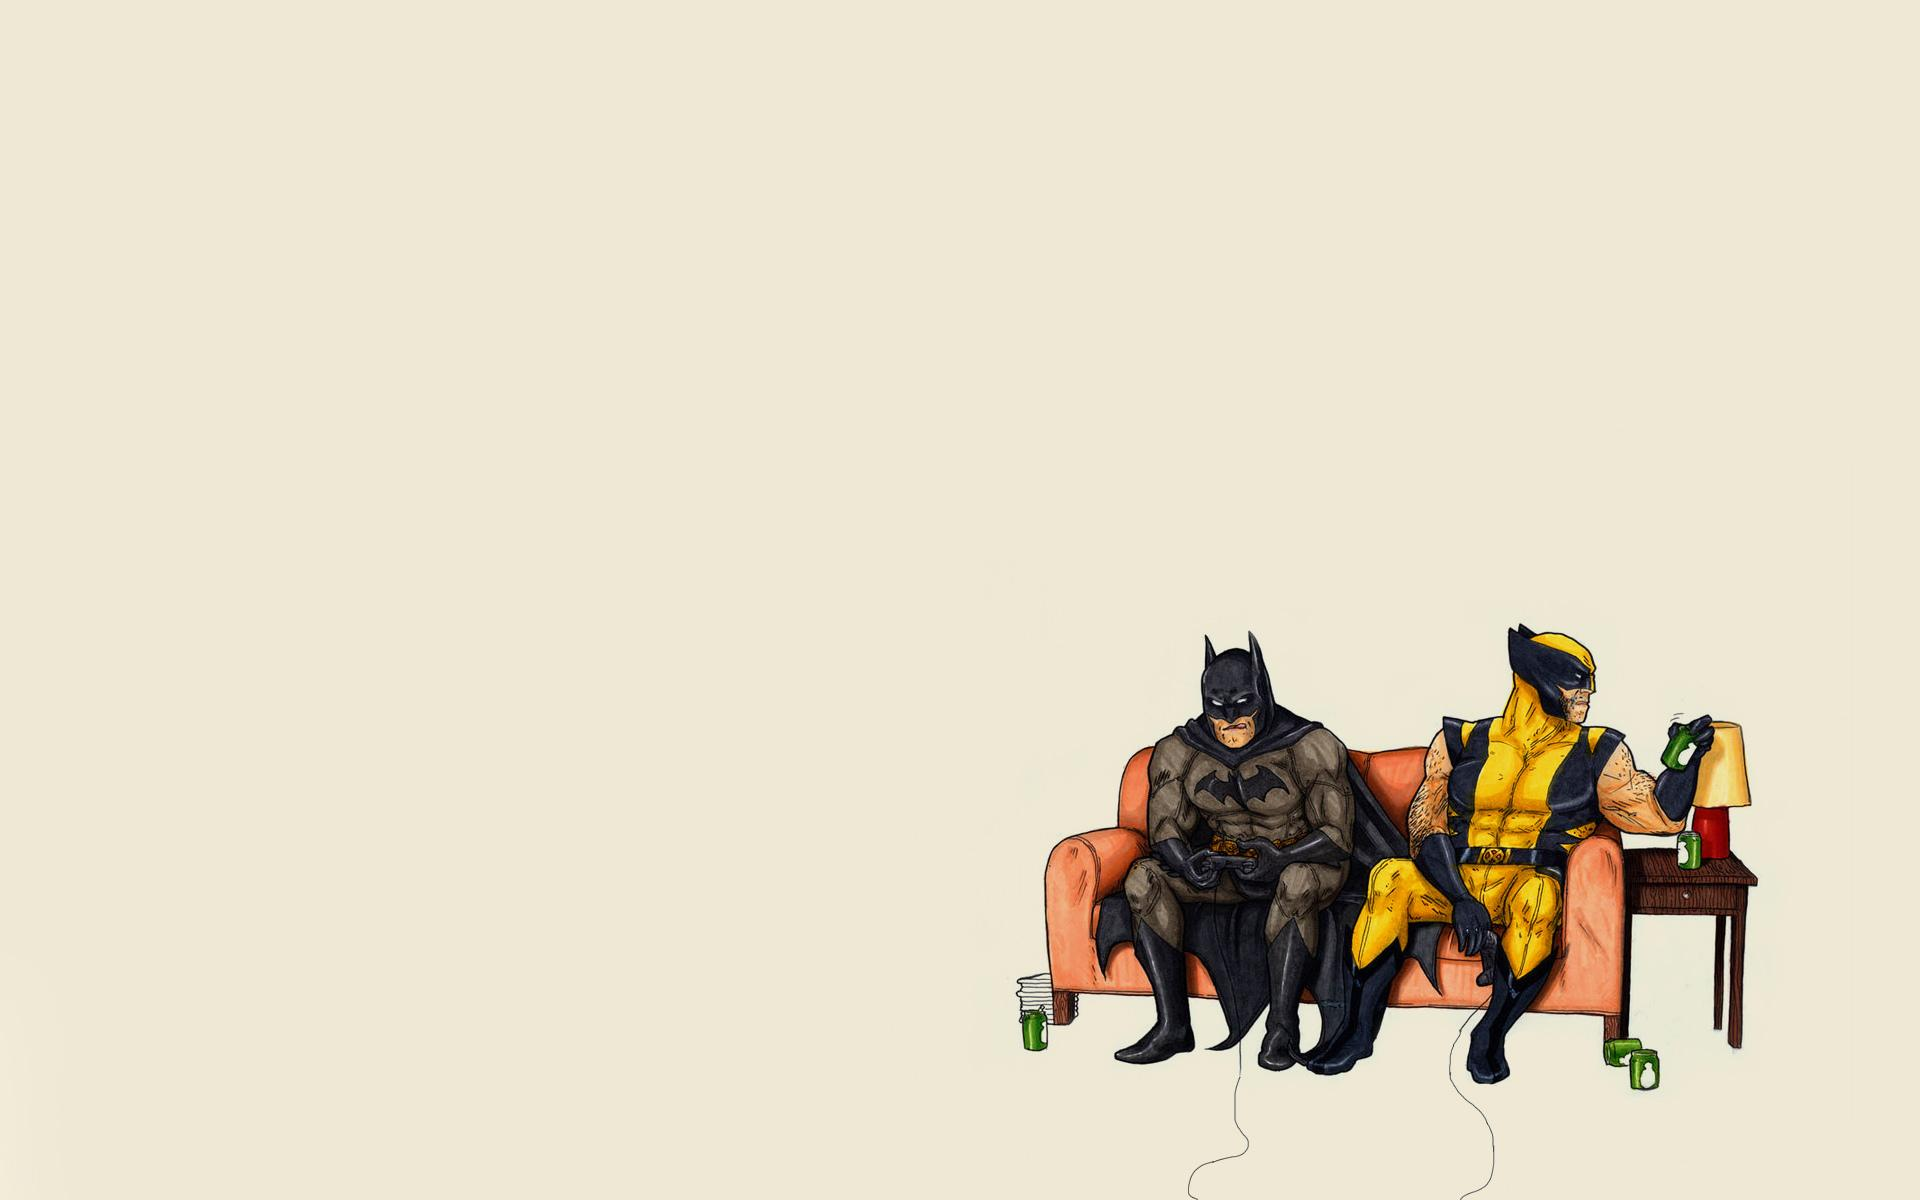 Crossover Comics wallpapers HD quality